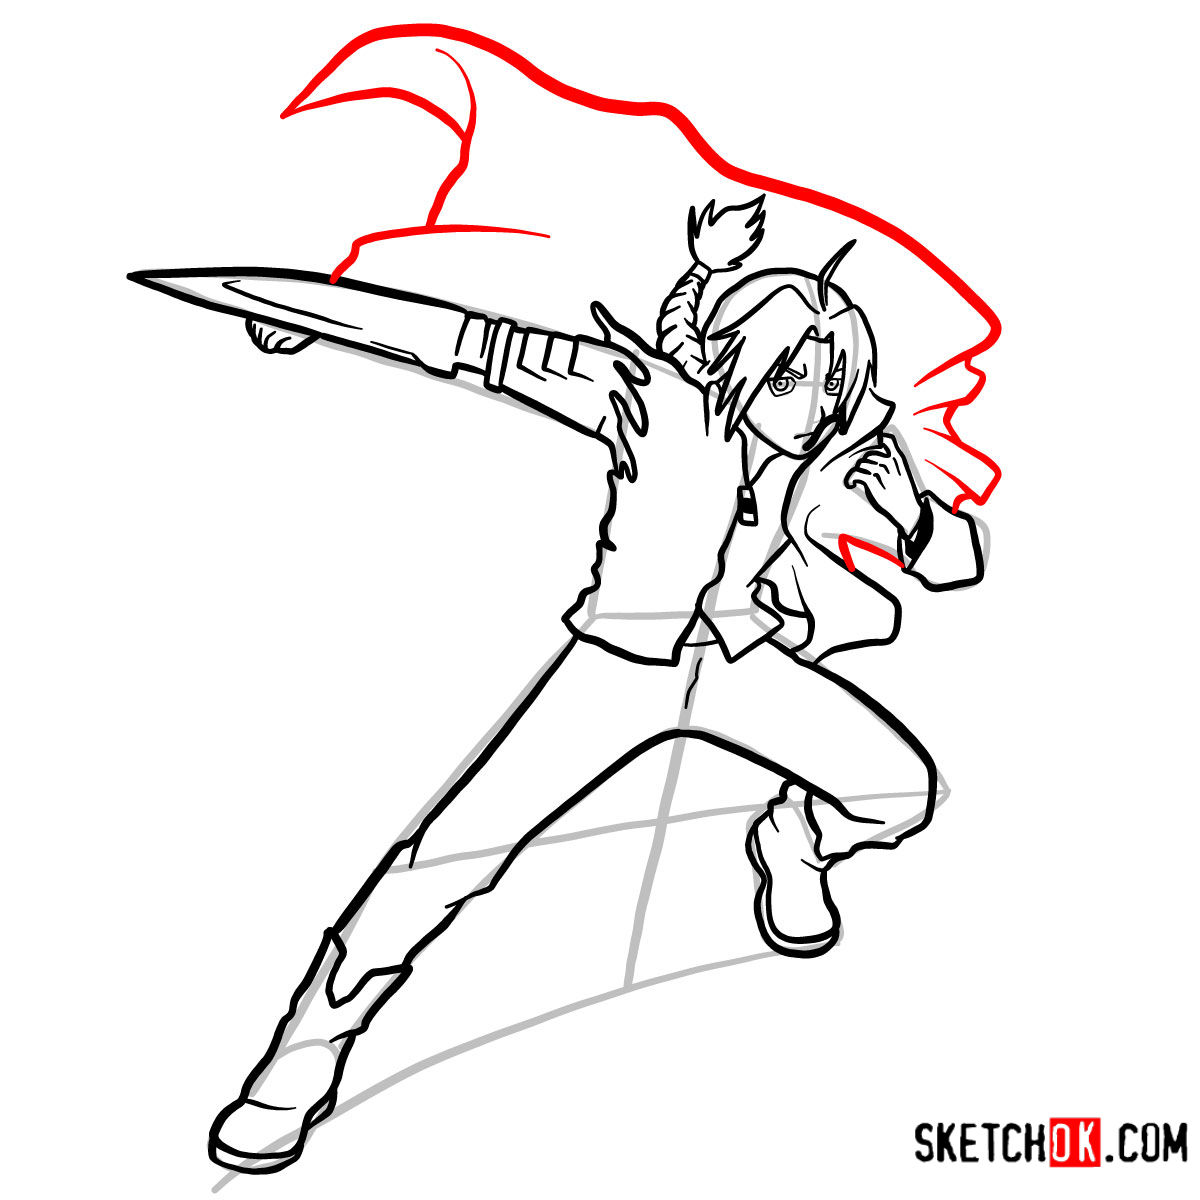 How to draw Edward Elric in a fight | Fullmetal Alchemist - step 13